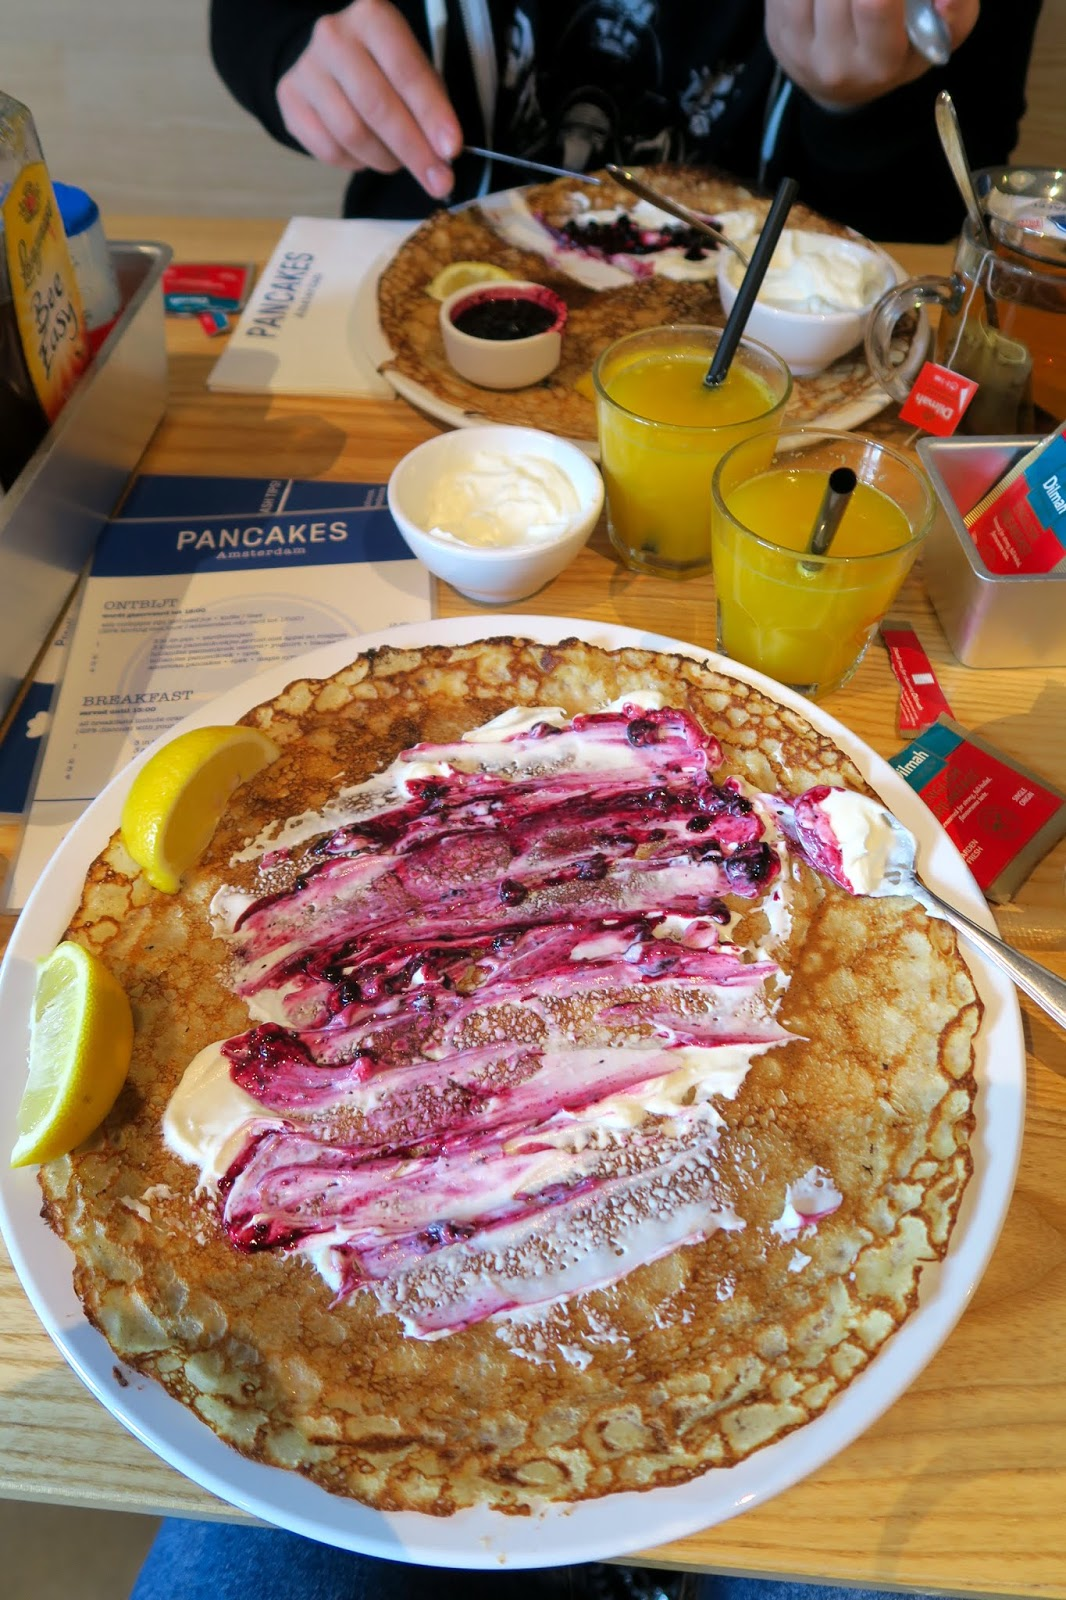 PANCAKES Amsterdam Dutch pancake with blueberry and yogurt